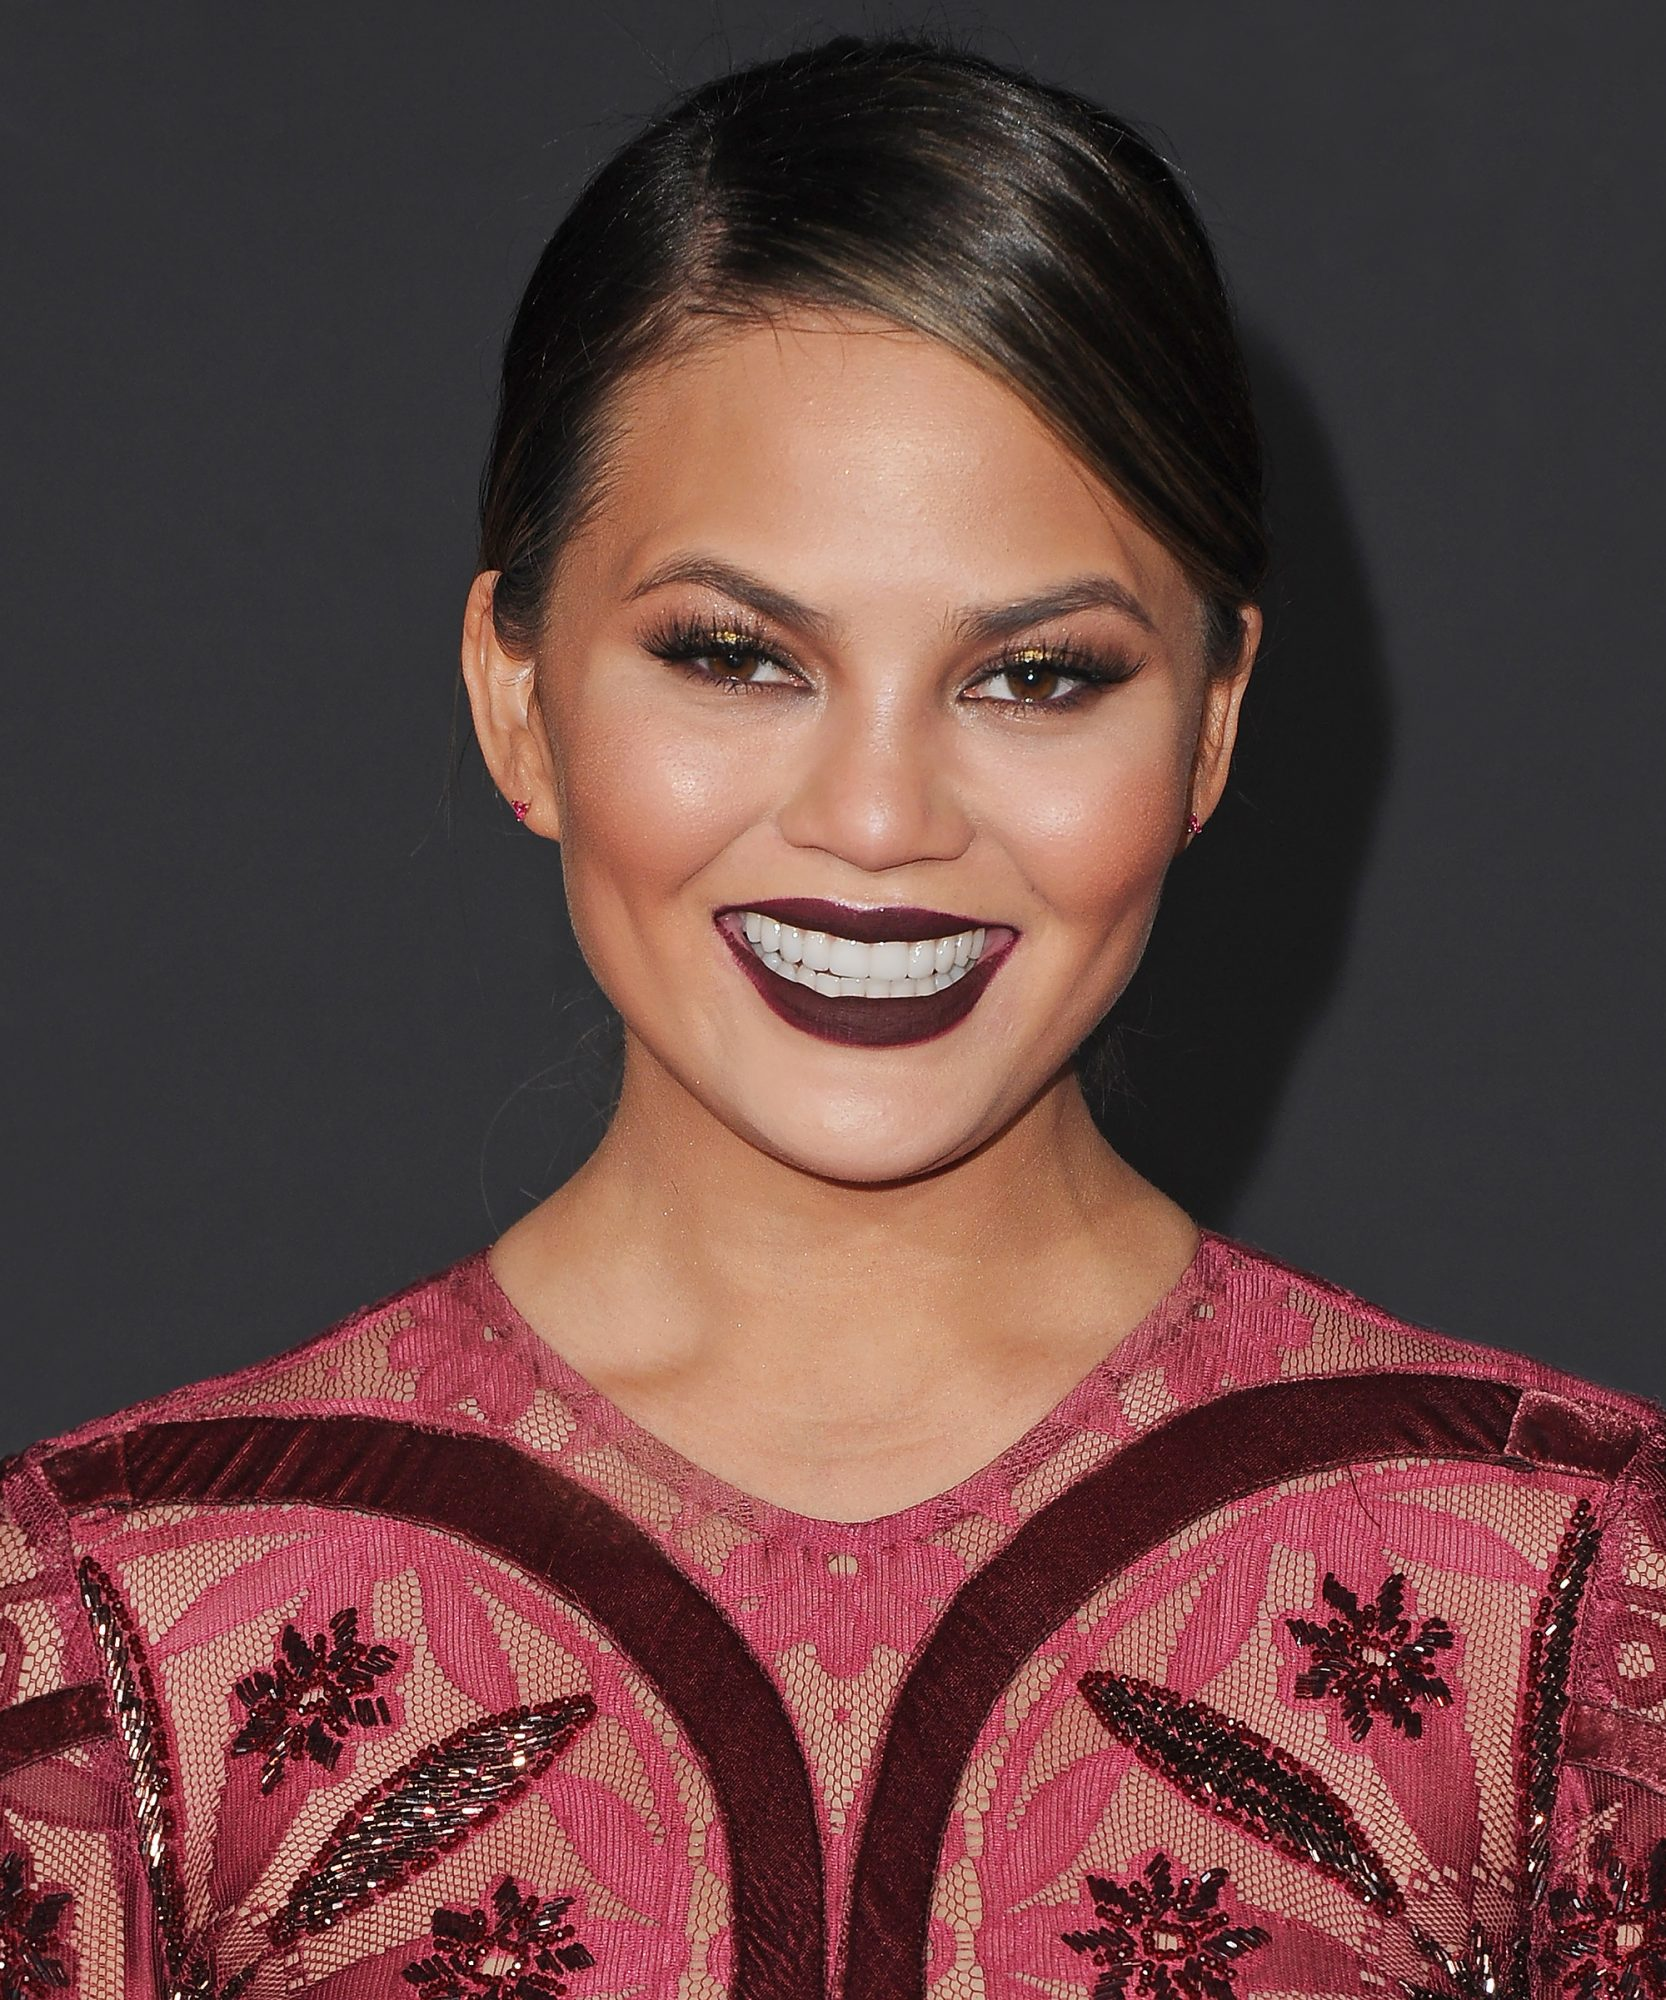 Chrissy Teigen's BECCA Glow Face Palette Is Here